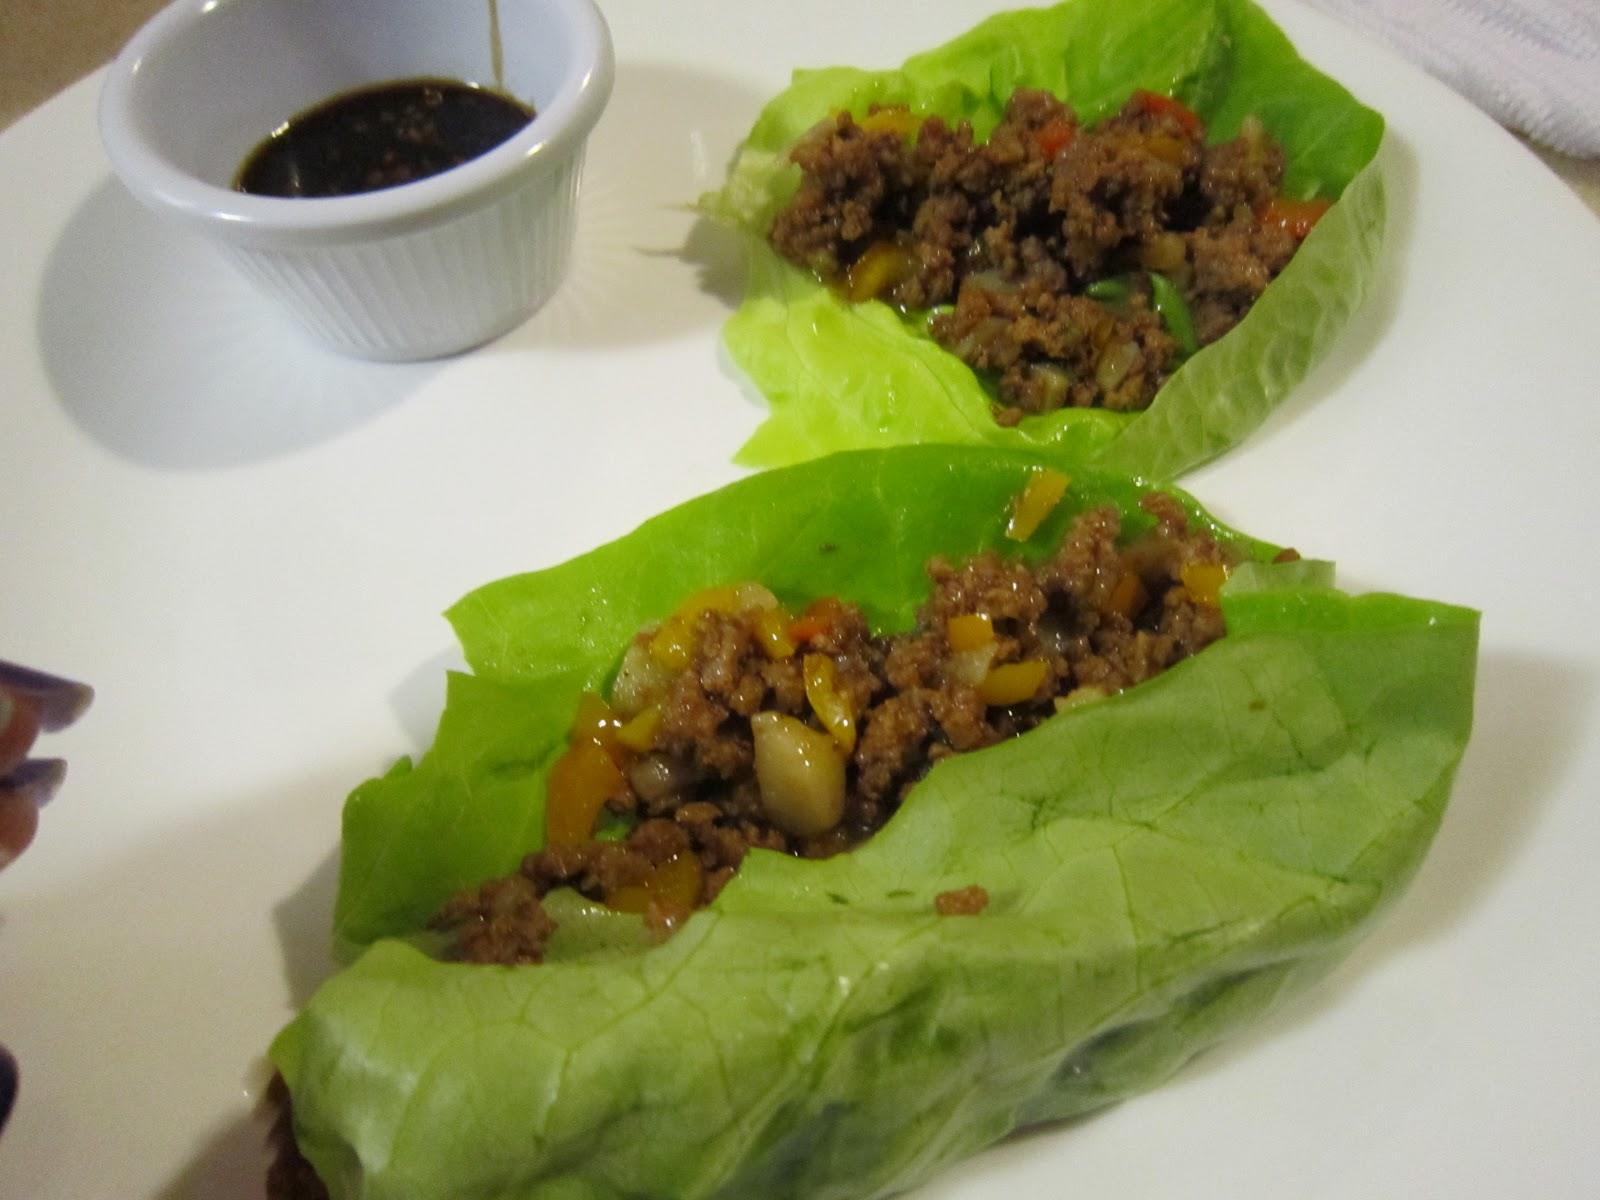 Chicken Lettuce Wraps (but it's not chicken!)